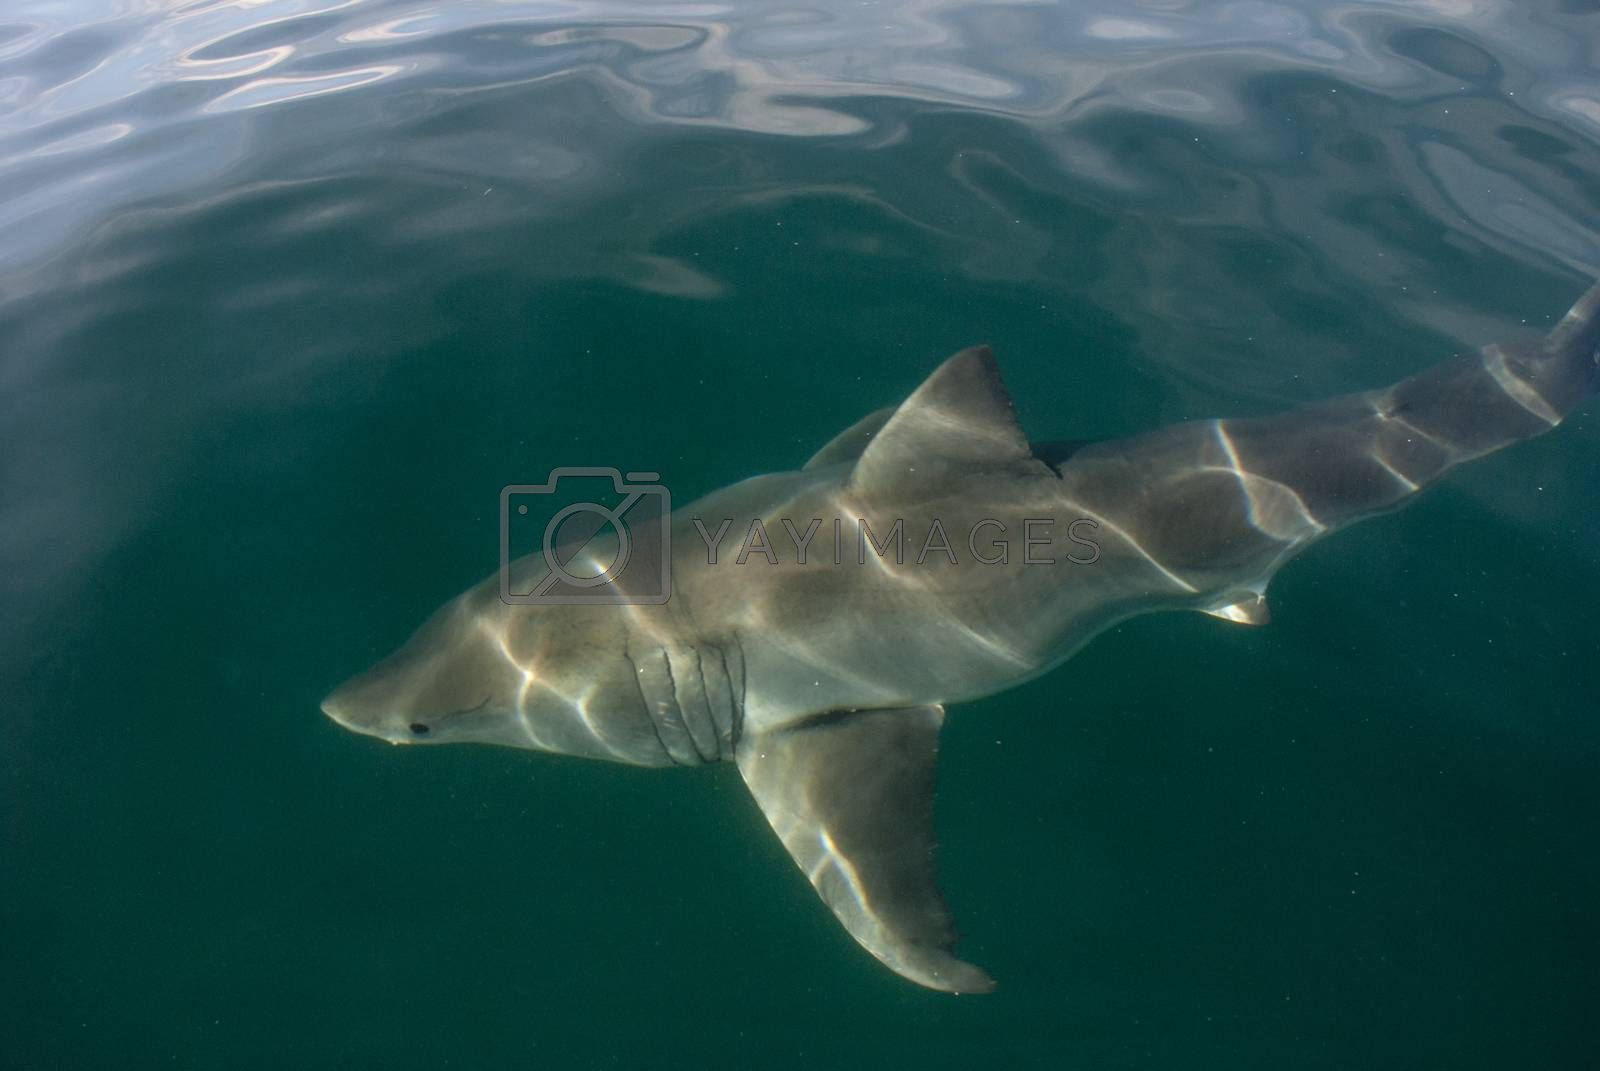 A great white shark underwater in Gansbaai, South Africa